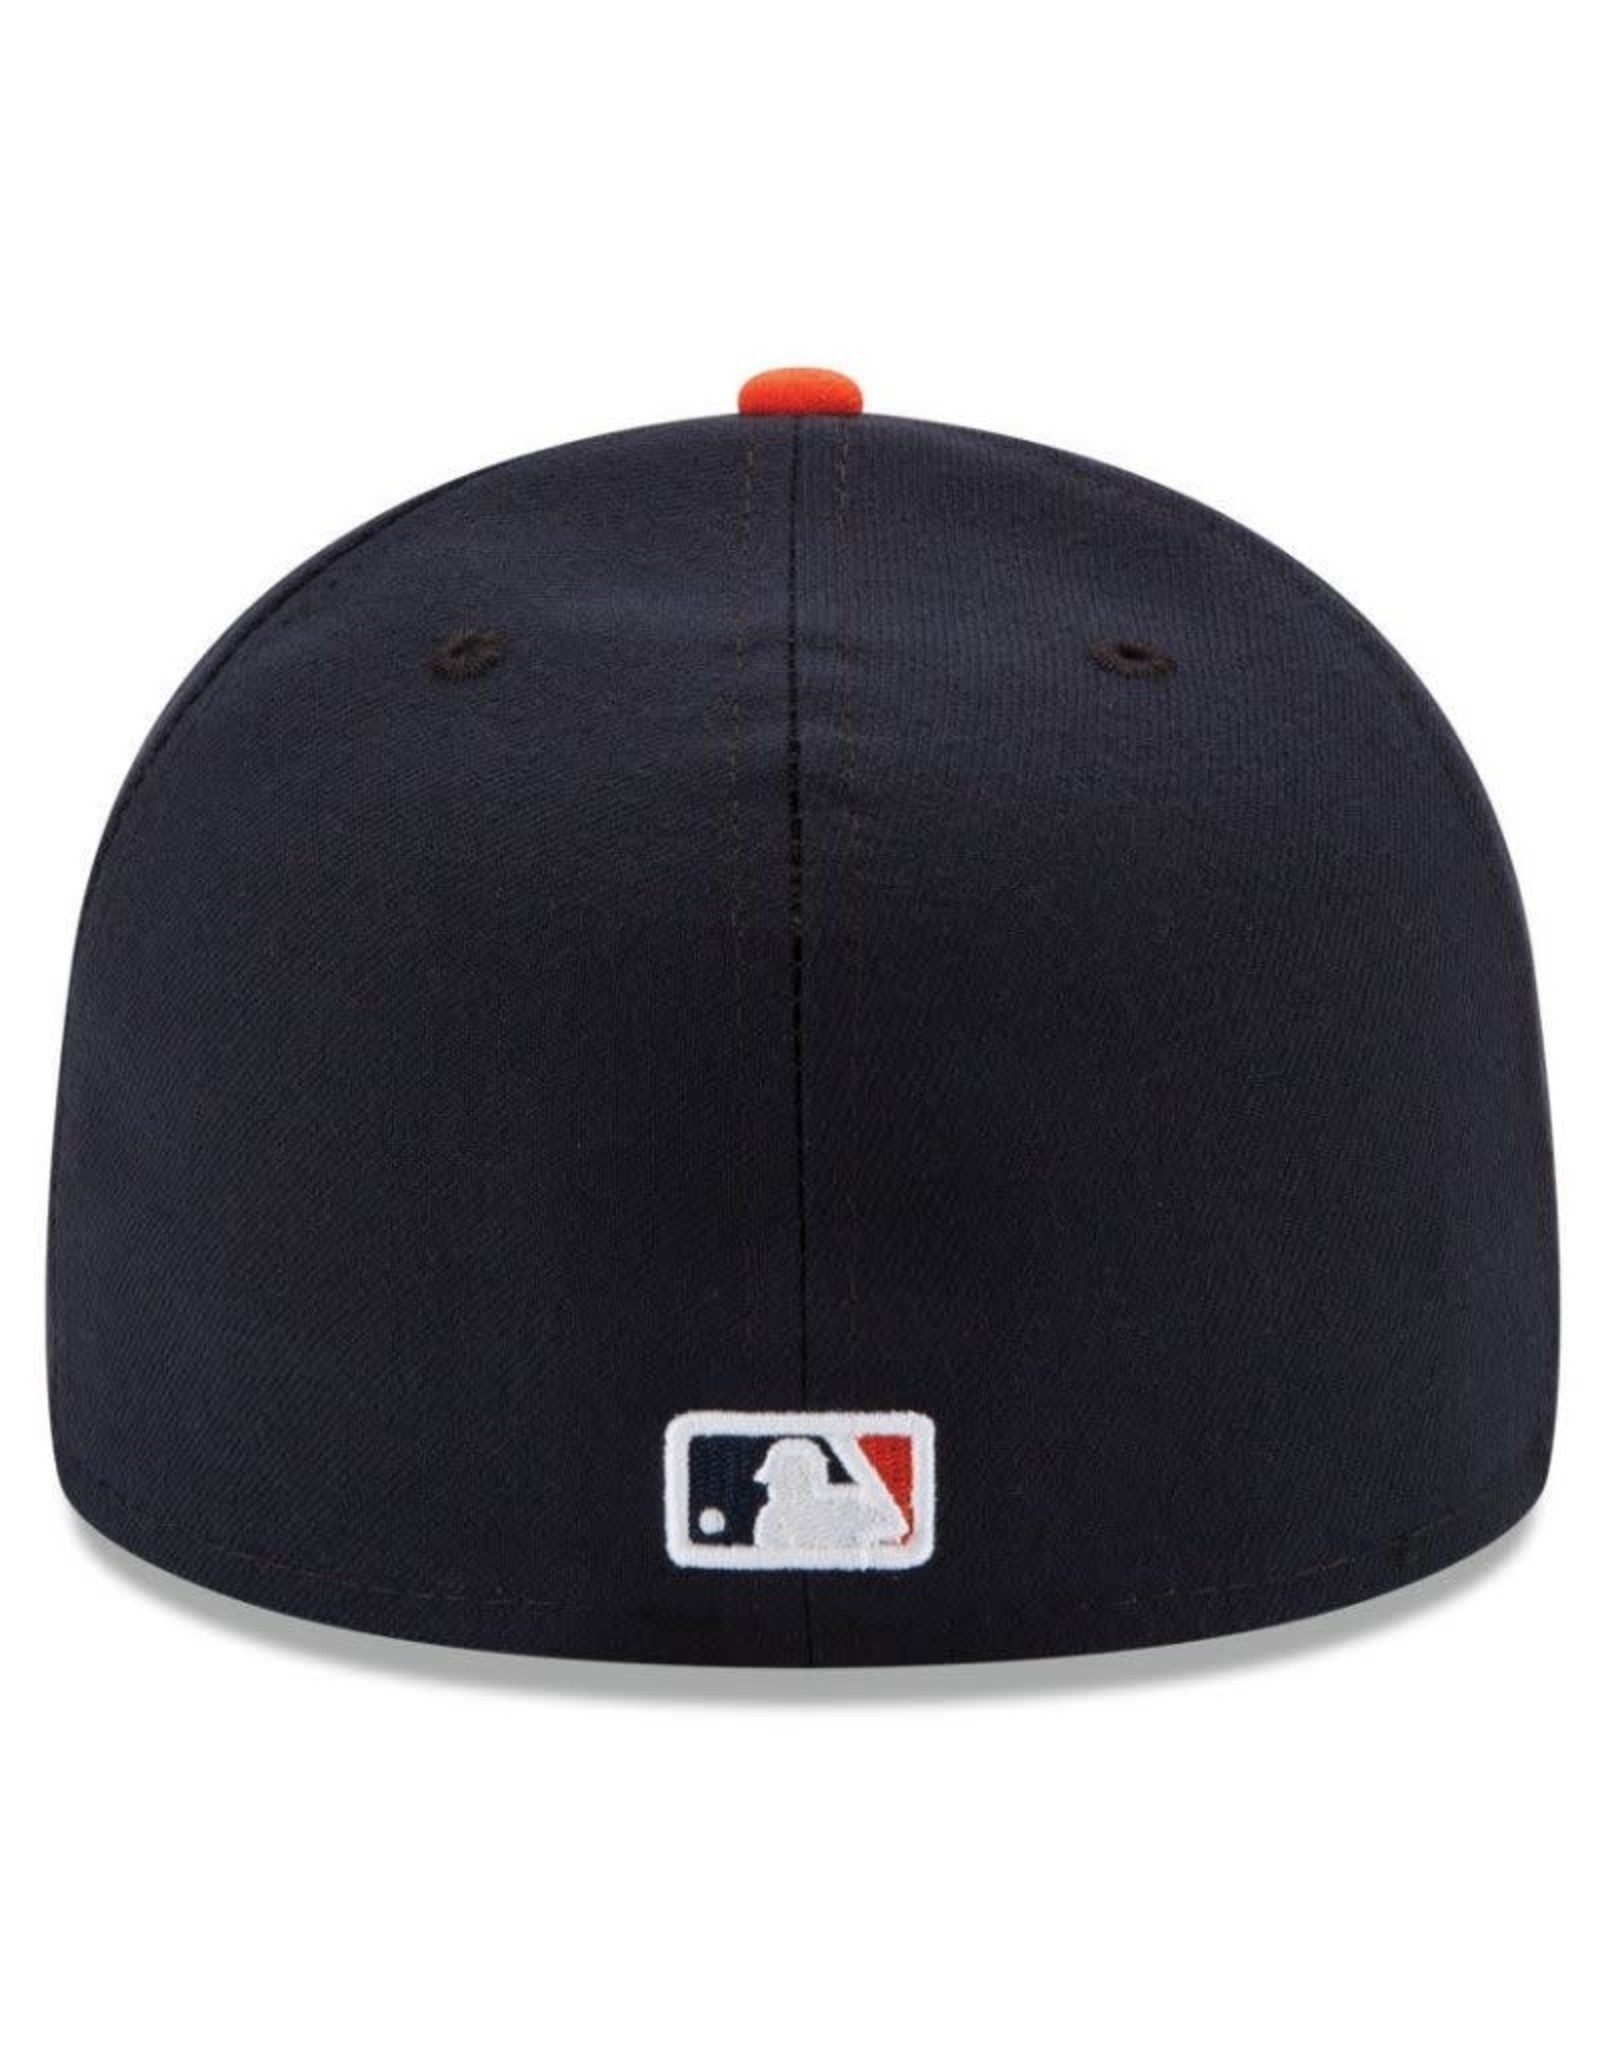 New Era On-Field  Authentic 59FIFTY Home Hat Detroit Tigers Navy/Orange